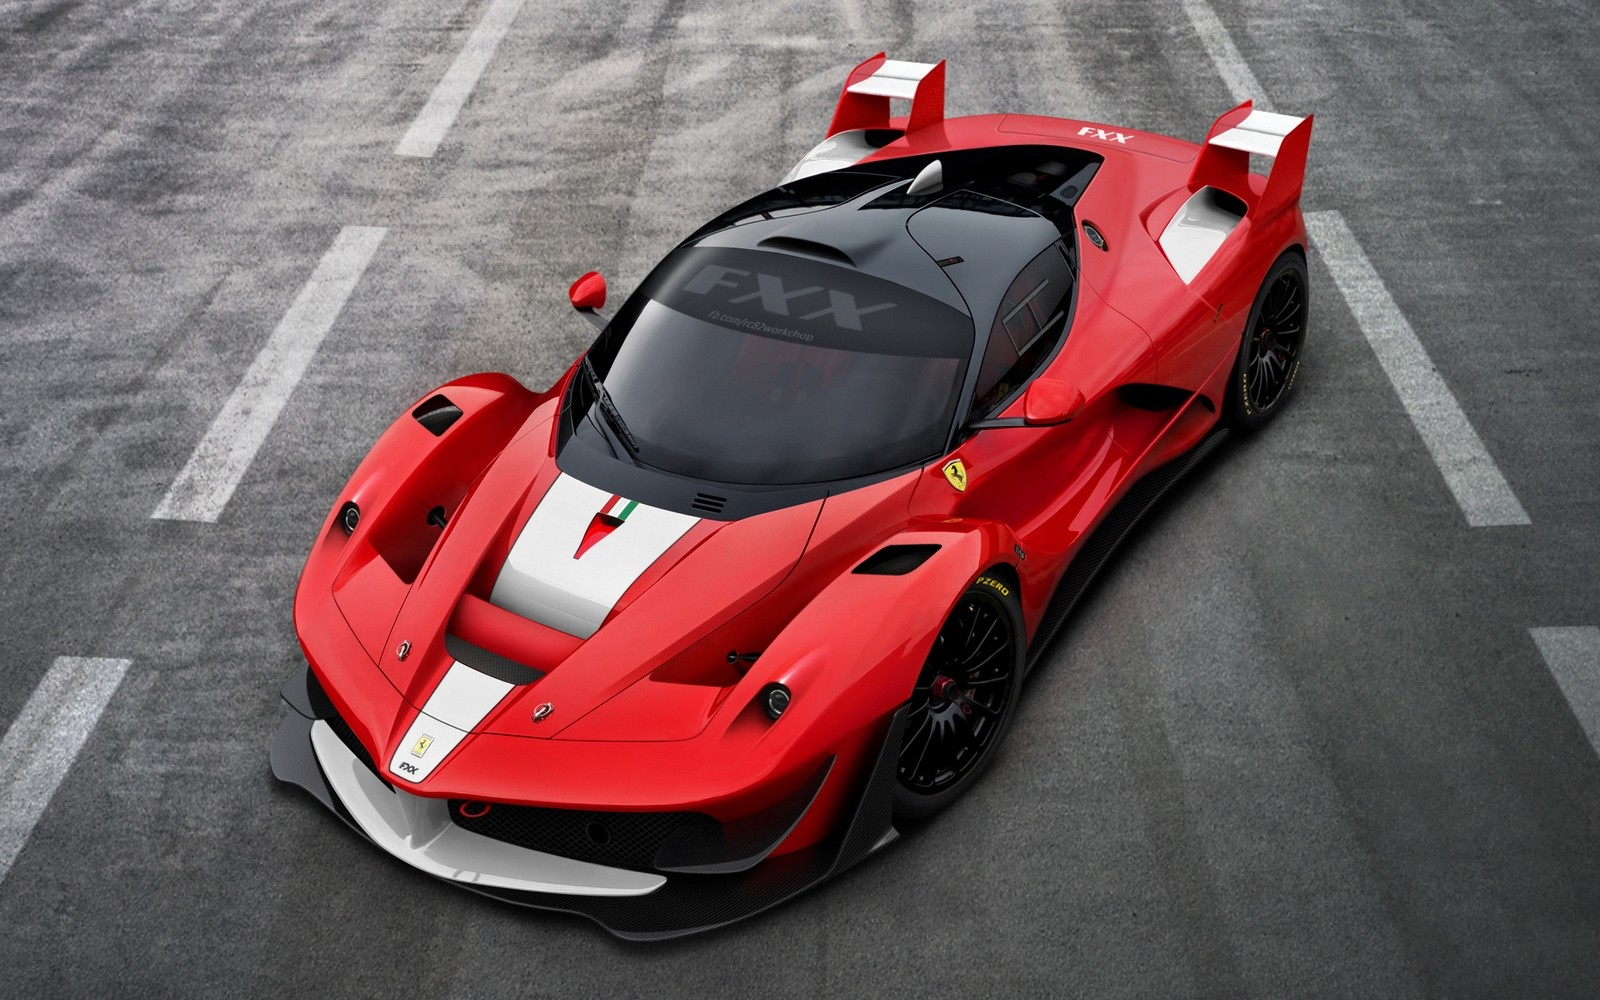 extreme laferrari xx confirmed for next year gtspirit. Black Bedroom Furniture Sets. Home Design Ideas